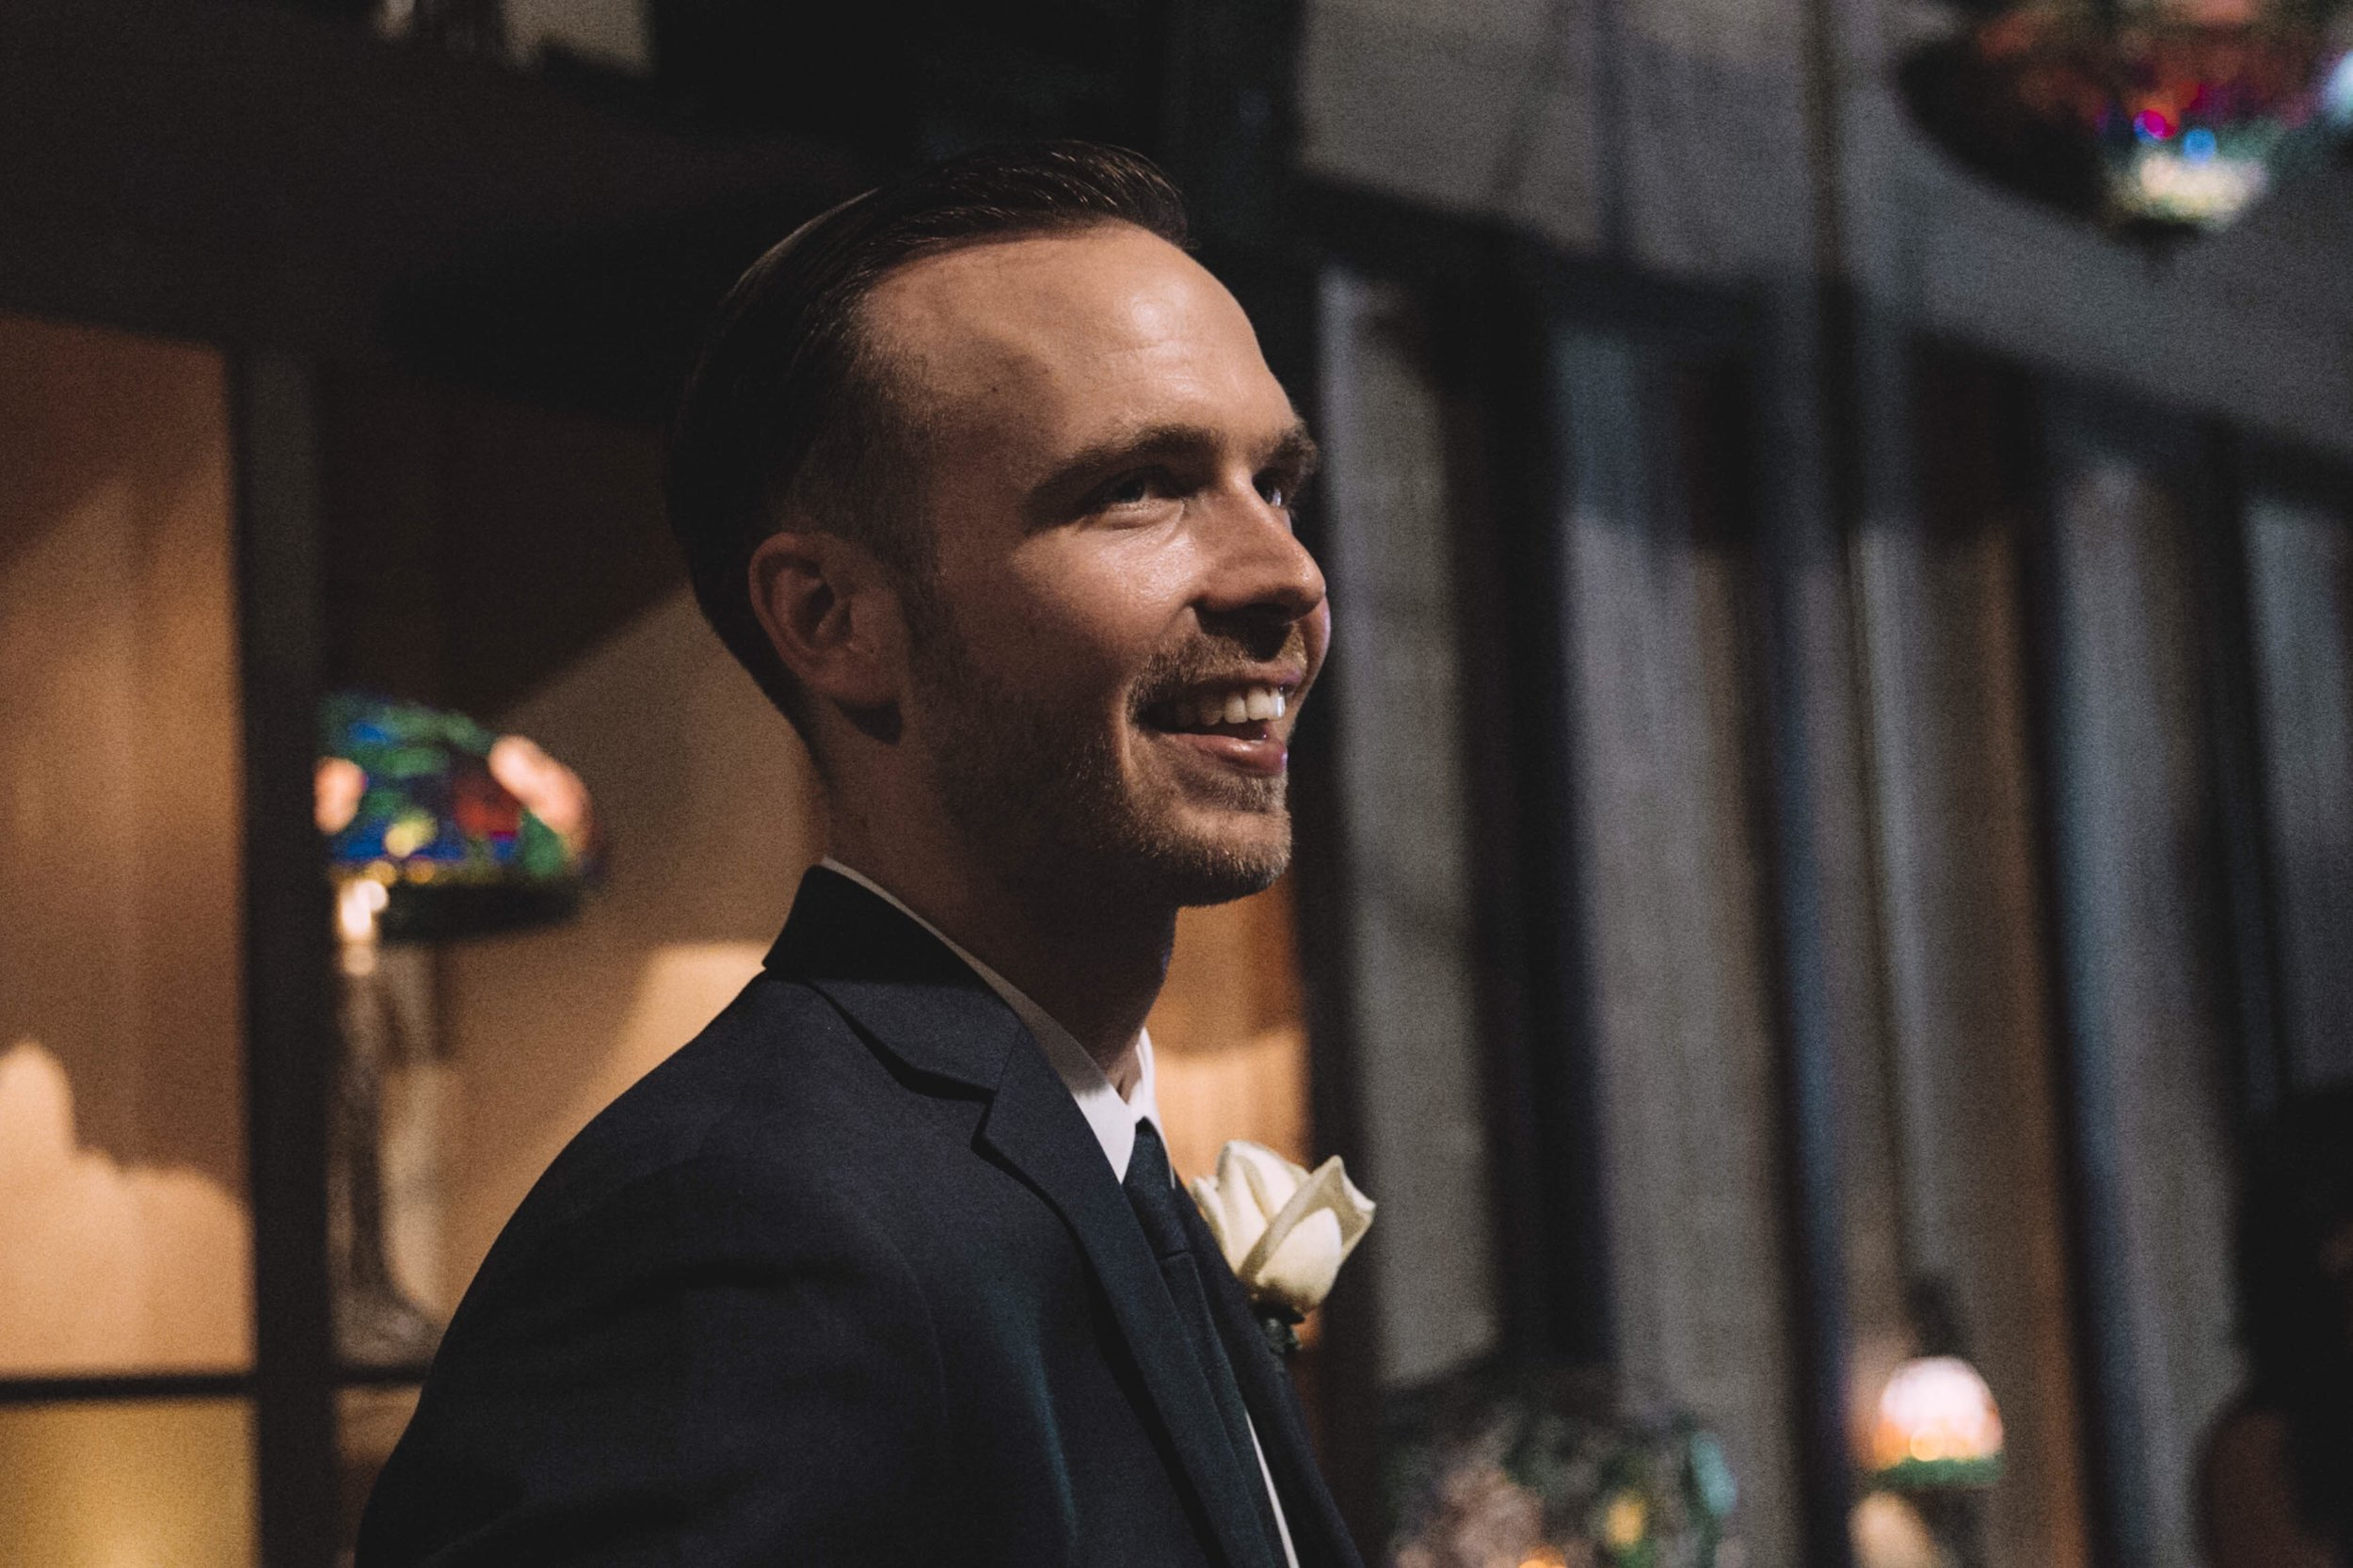 Just cheezin' seeing Devs coming down the aisle!